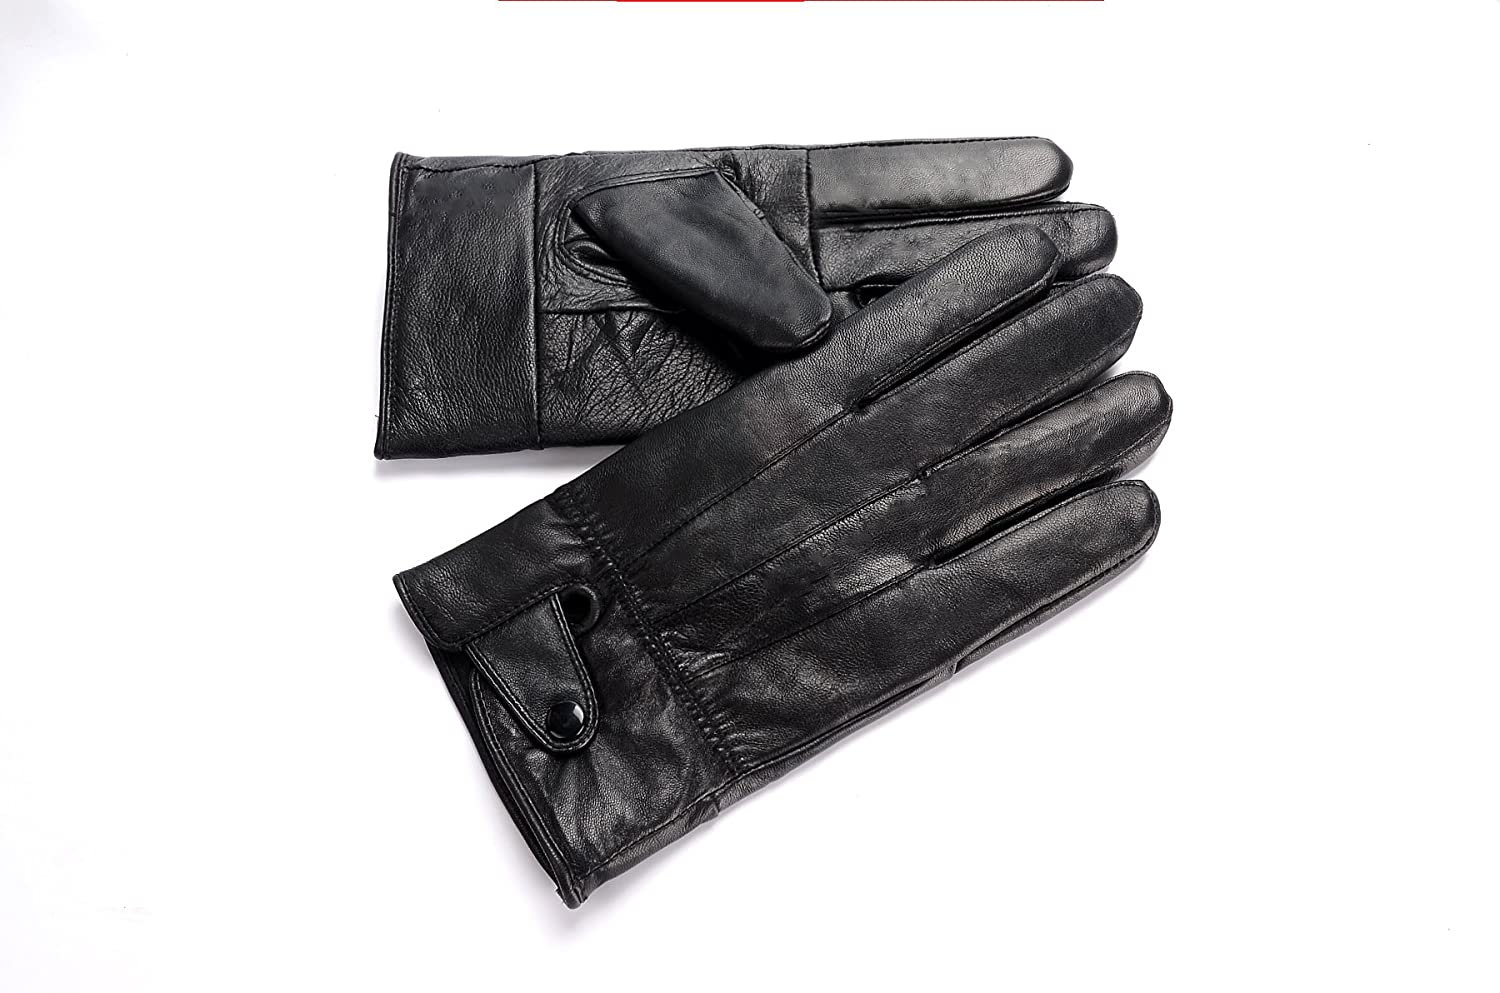 Motorcycle leather gloves amazon - Anccion Men S Genuine Leather Warm Lined Driving Gloves Motorcycle Gloves Medium At Amazon Men S Clothing Store